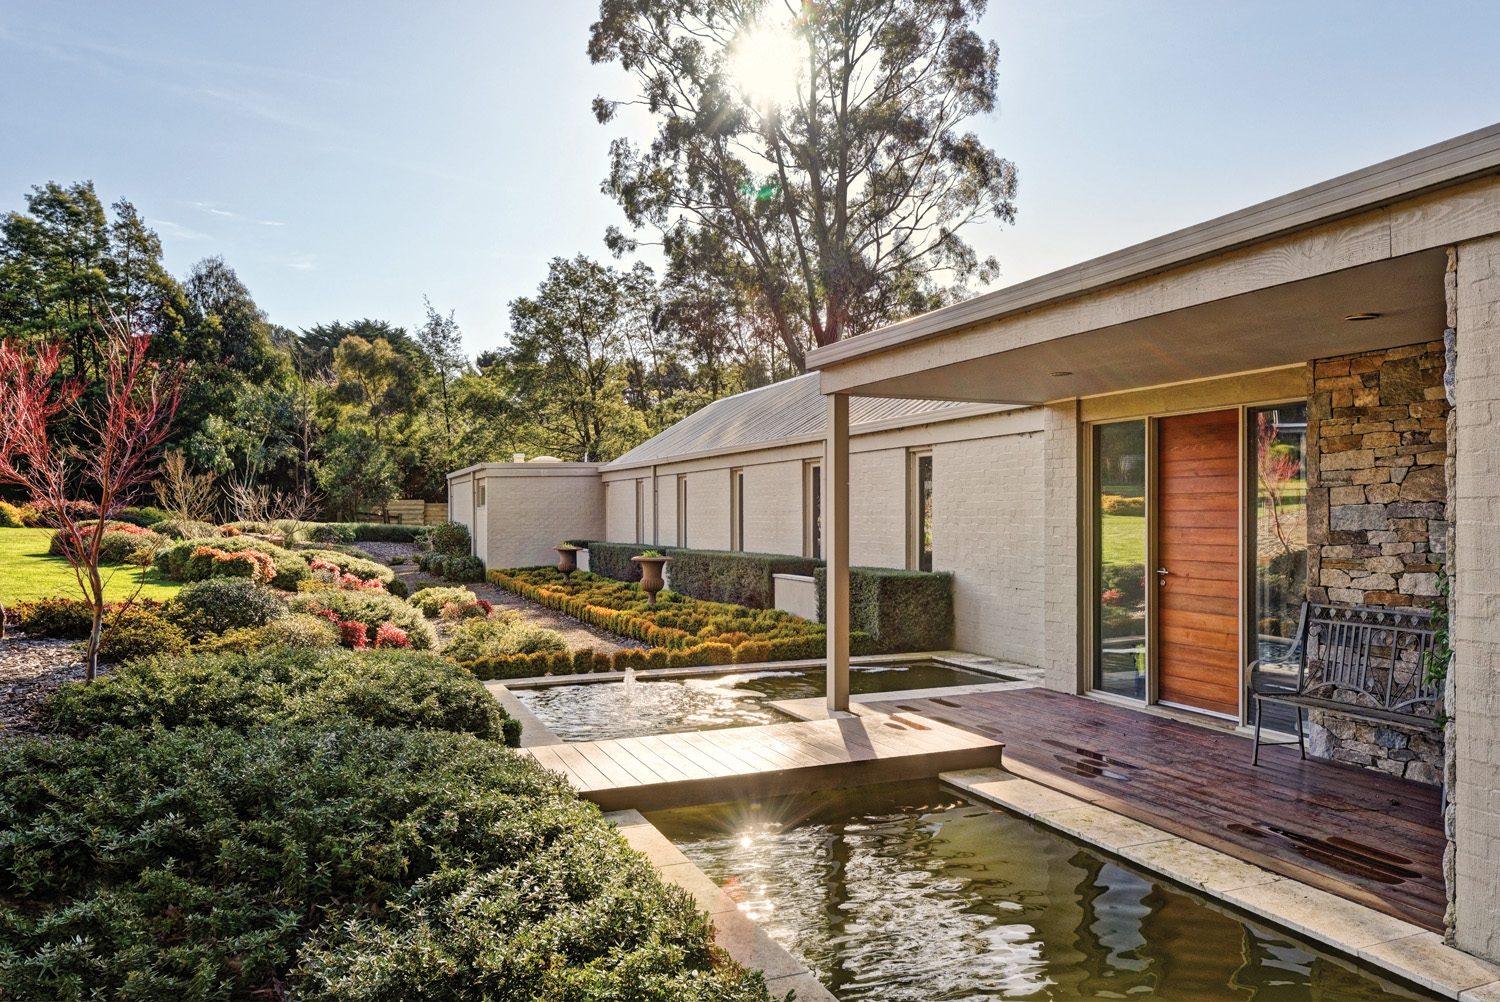 The moat adds an ethereal quality that complements the landscape